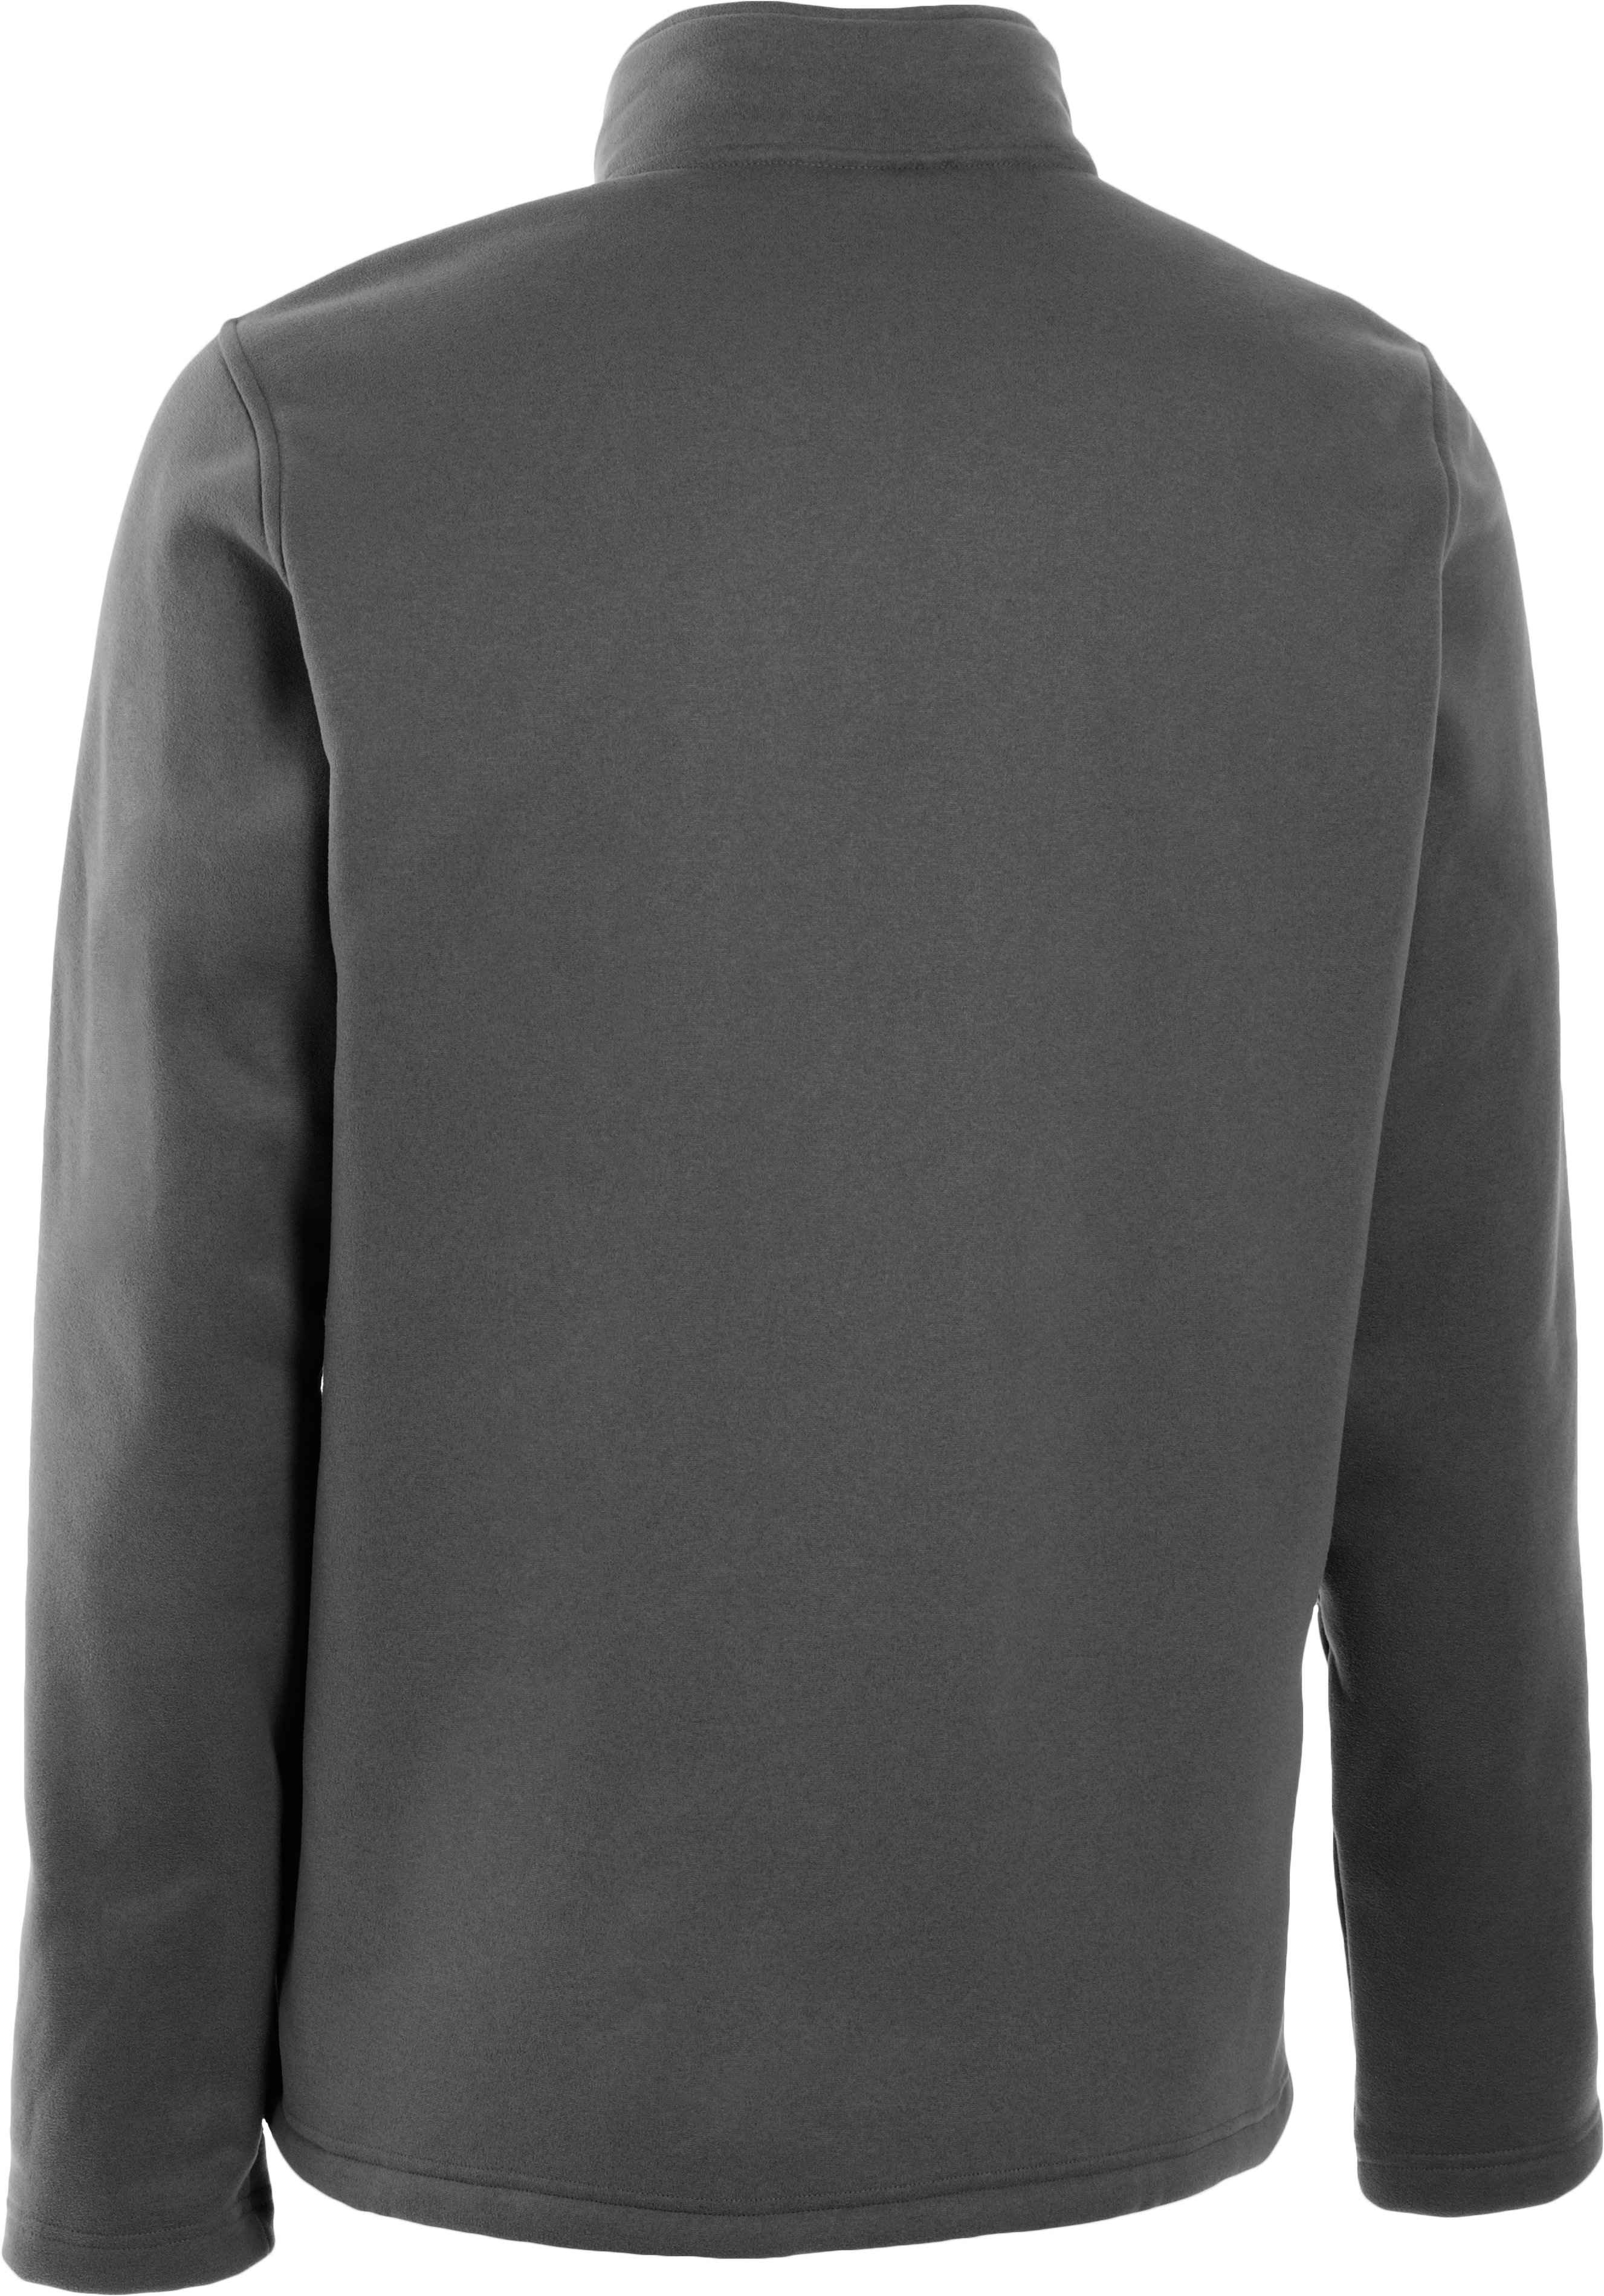 Men's Extreme ColdGear® Lite Fleece ¼ Zip, Graphite,